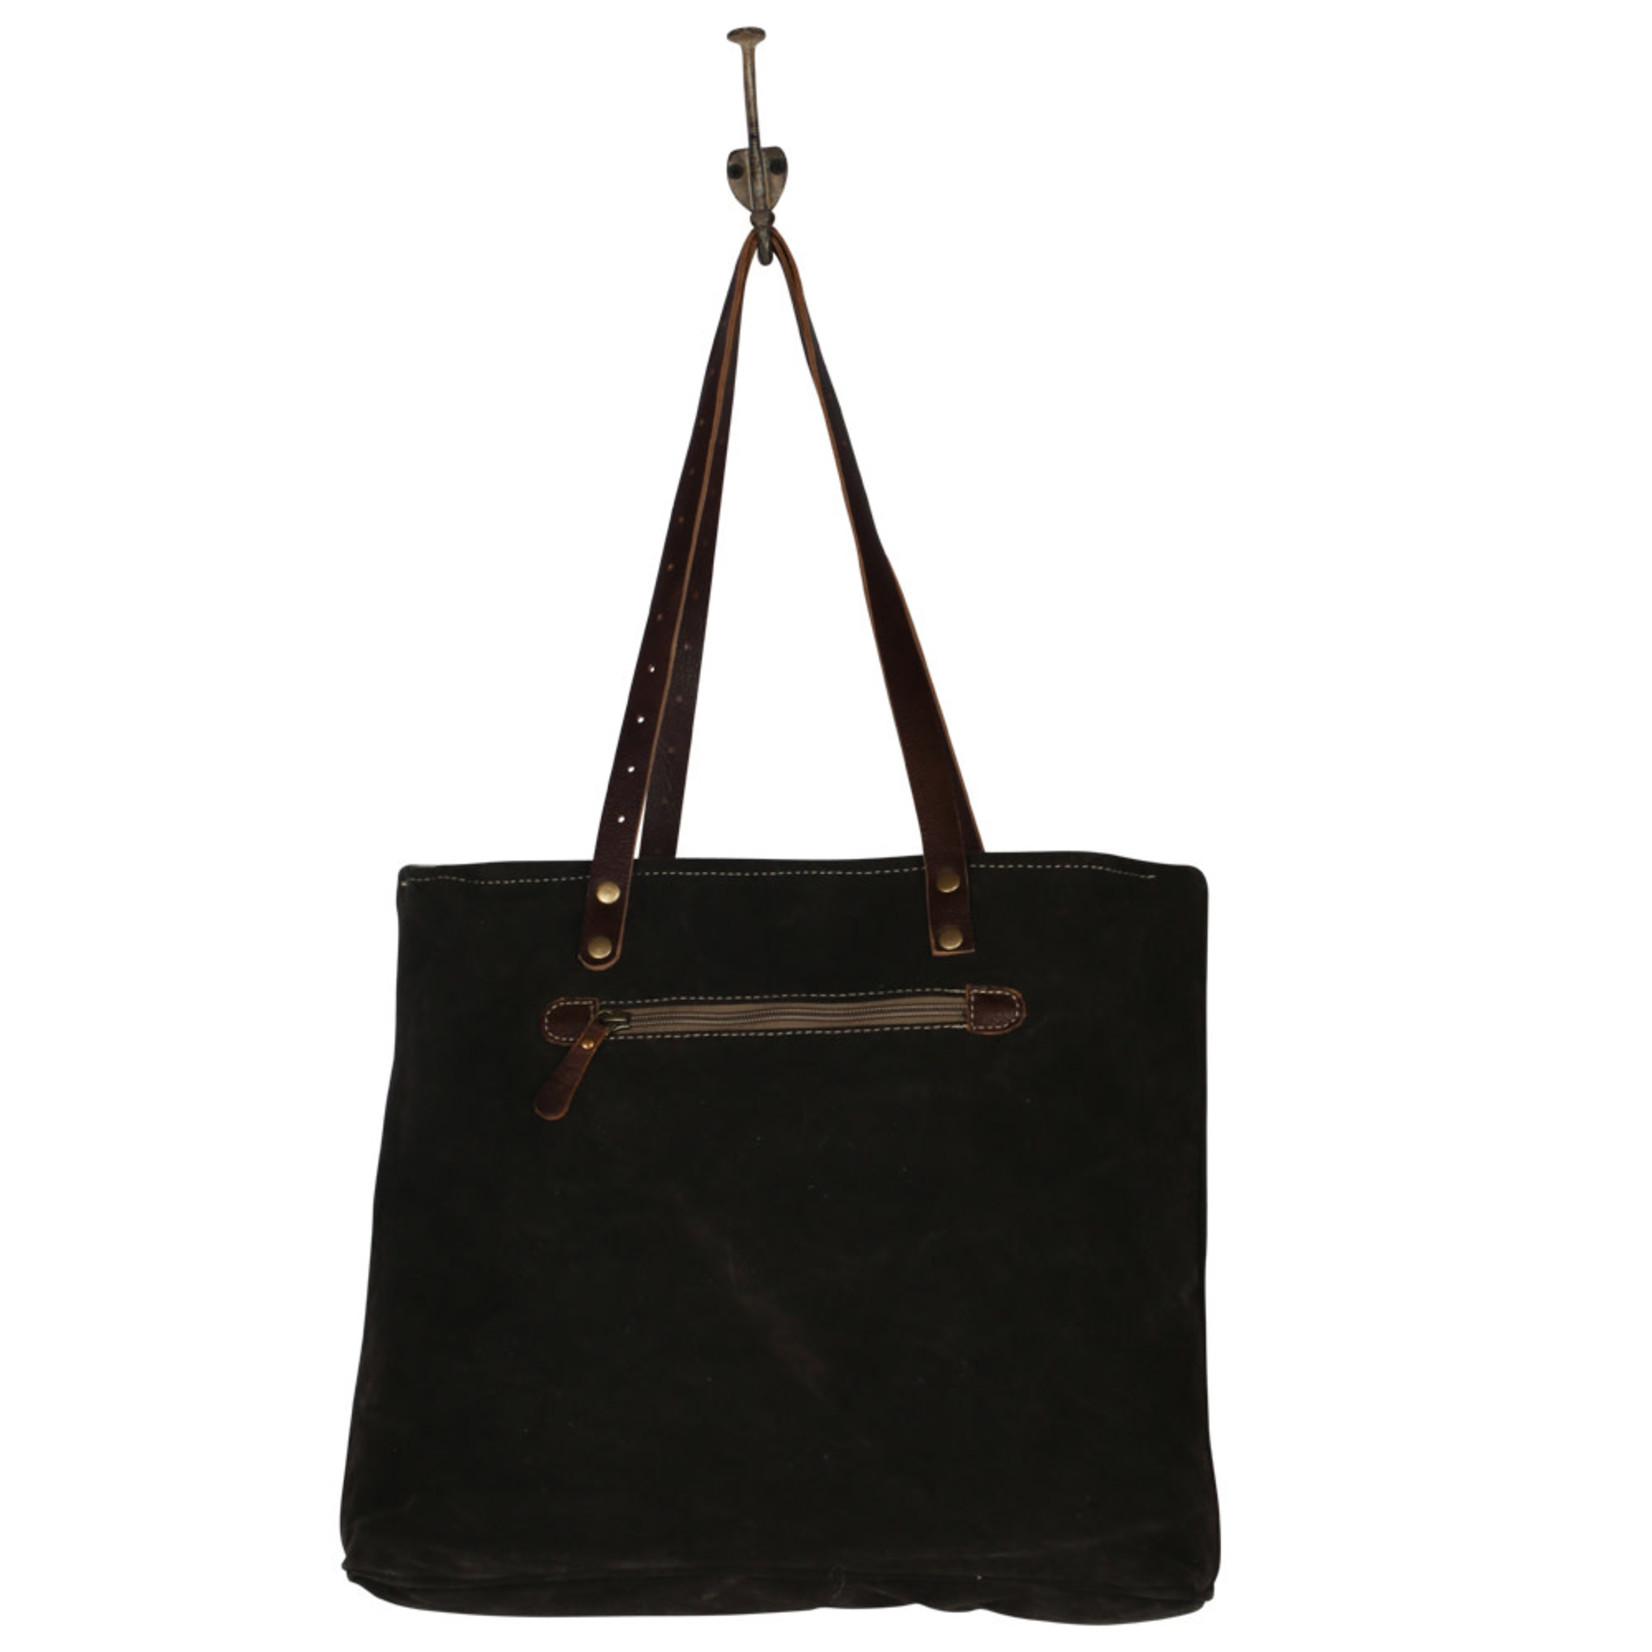 Myra Bags S-2053 Quaint Tote Bag